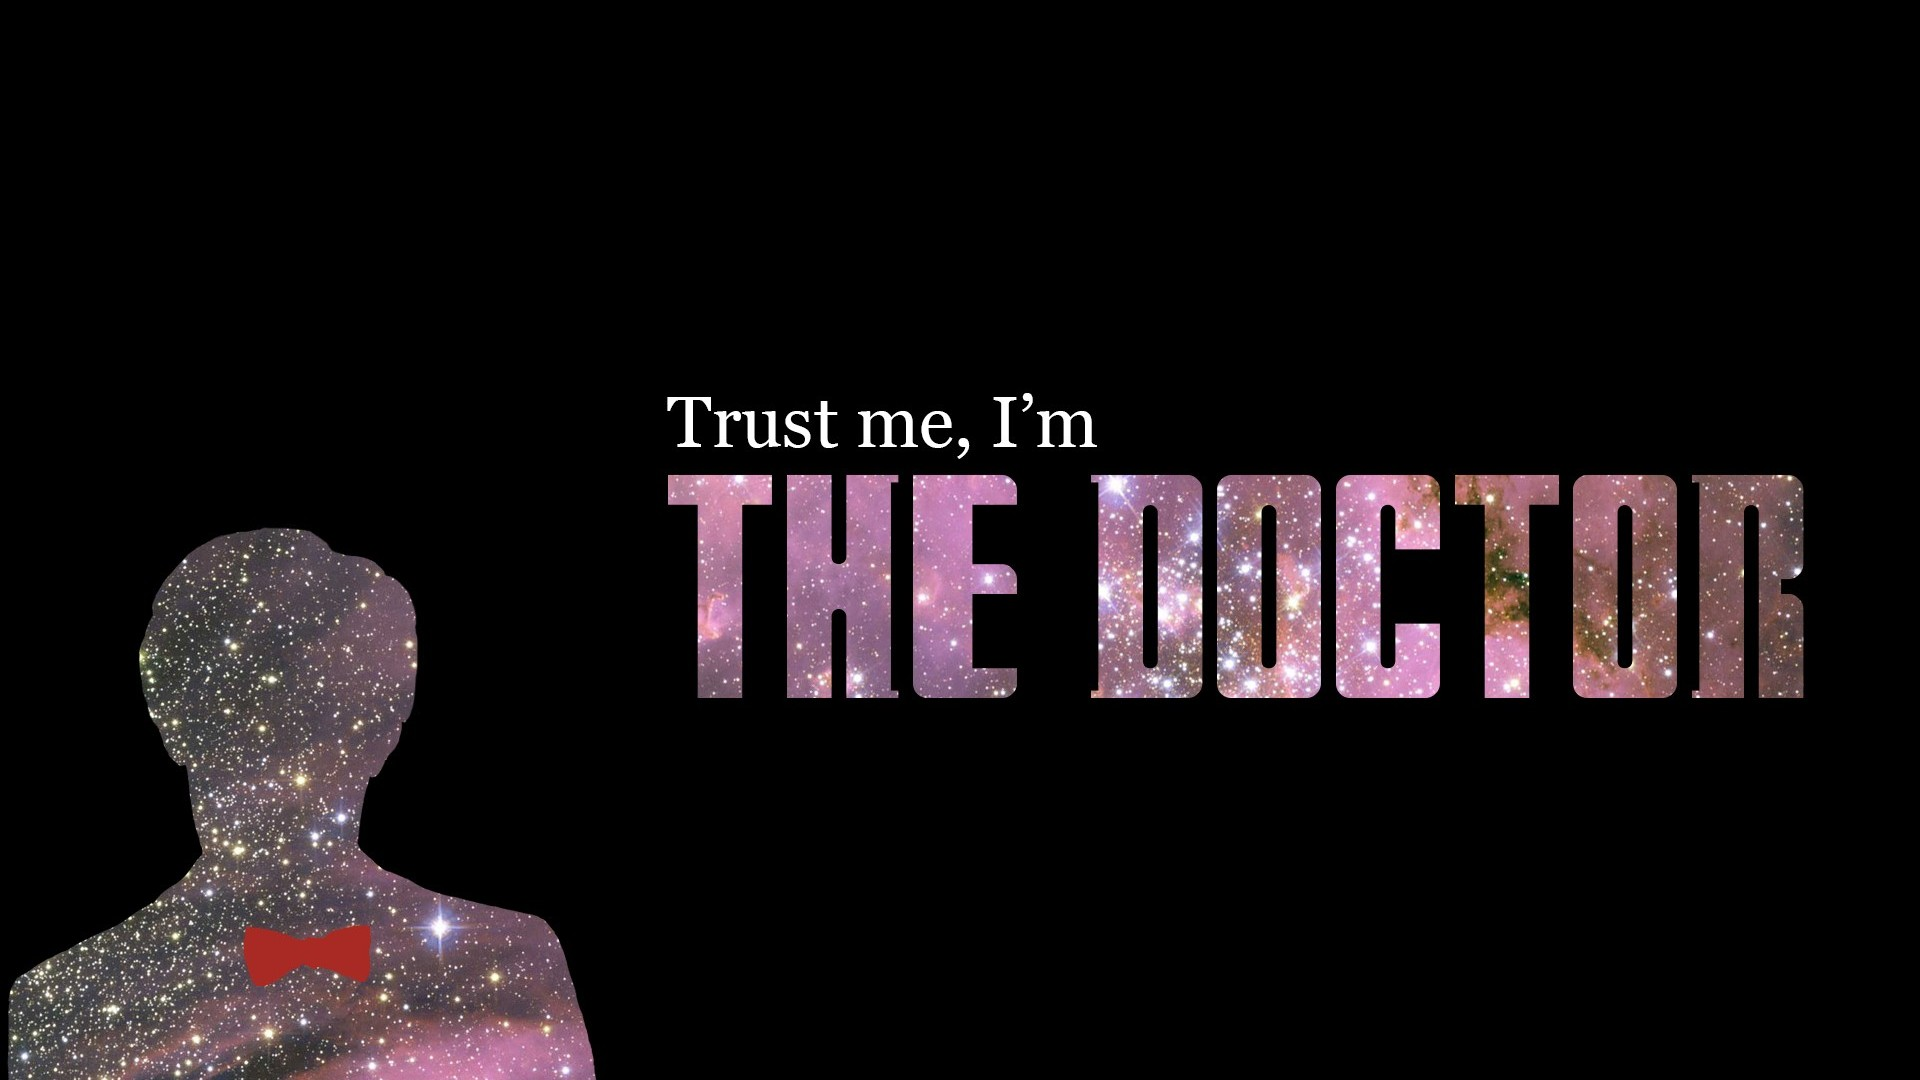 Eleventh Doctor Hd Wallpaper